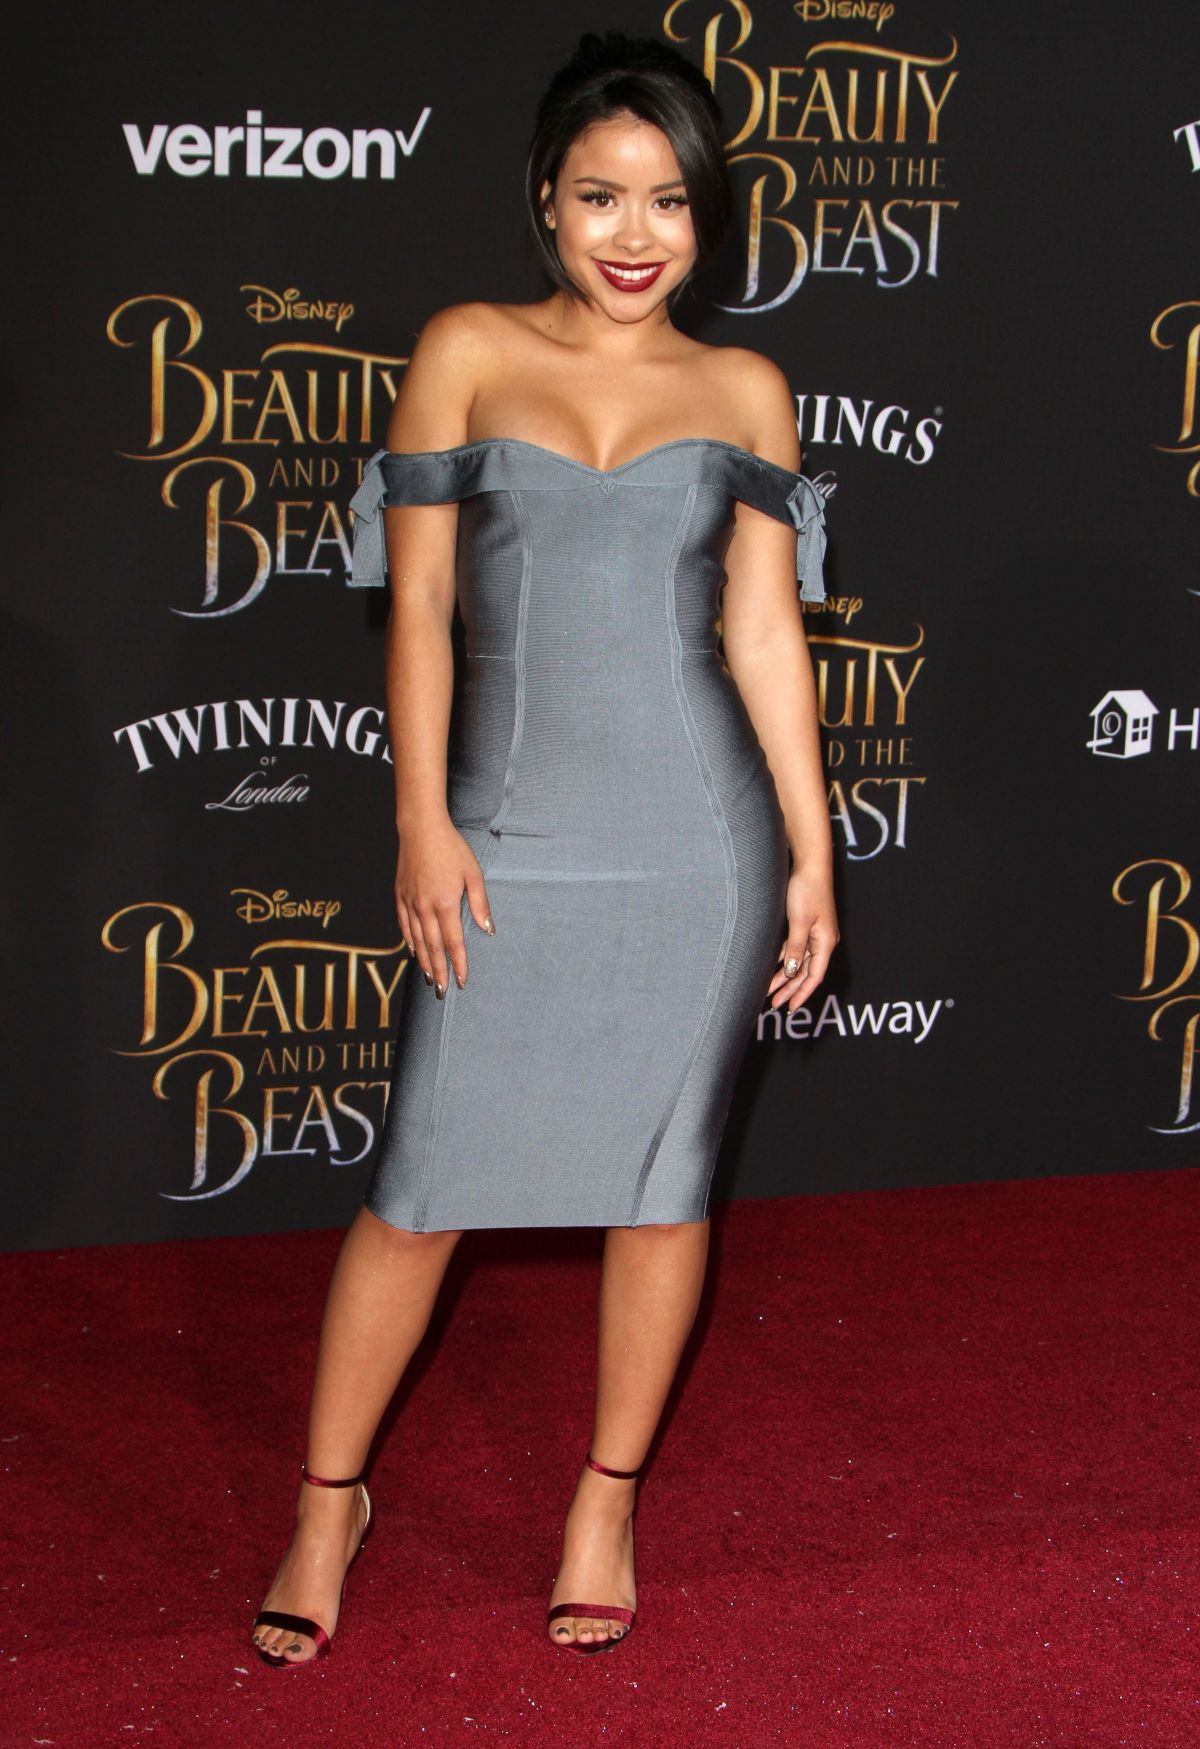 CIERRA RAMIREZ at Beauty and the Beast Premiere in Los Angeles 03/02/2017